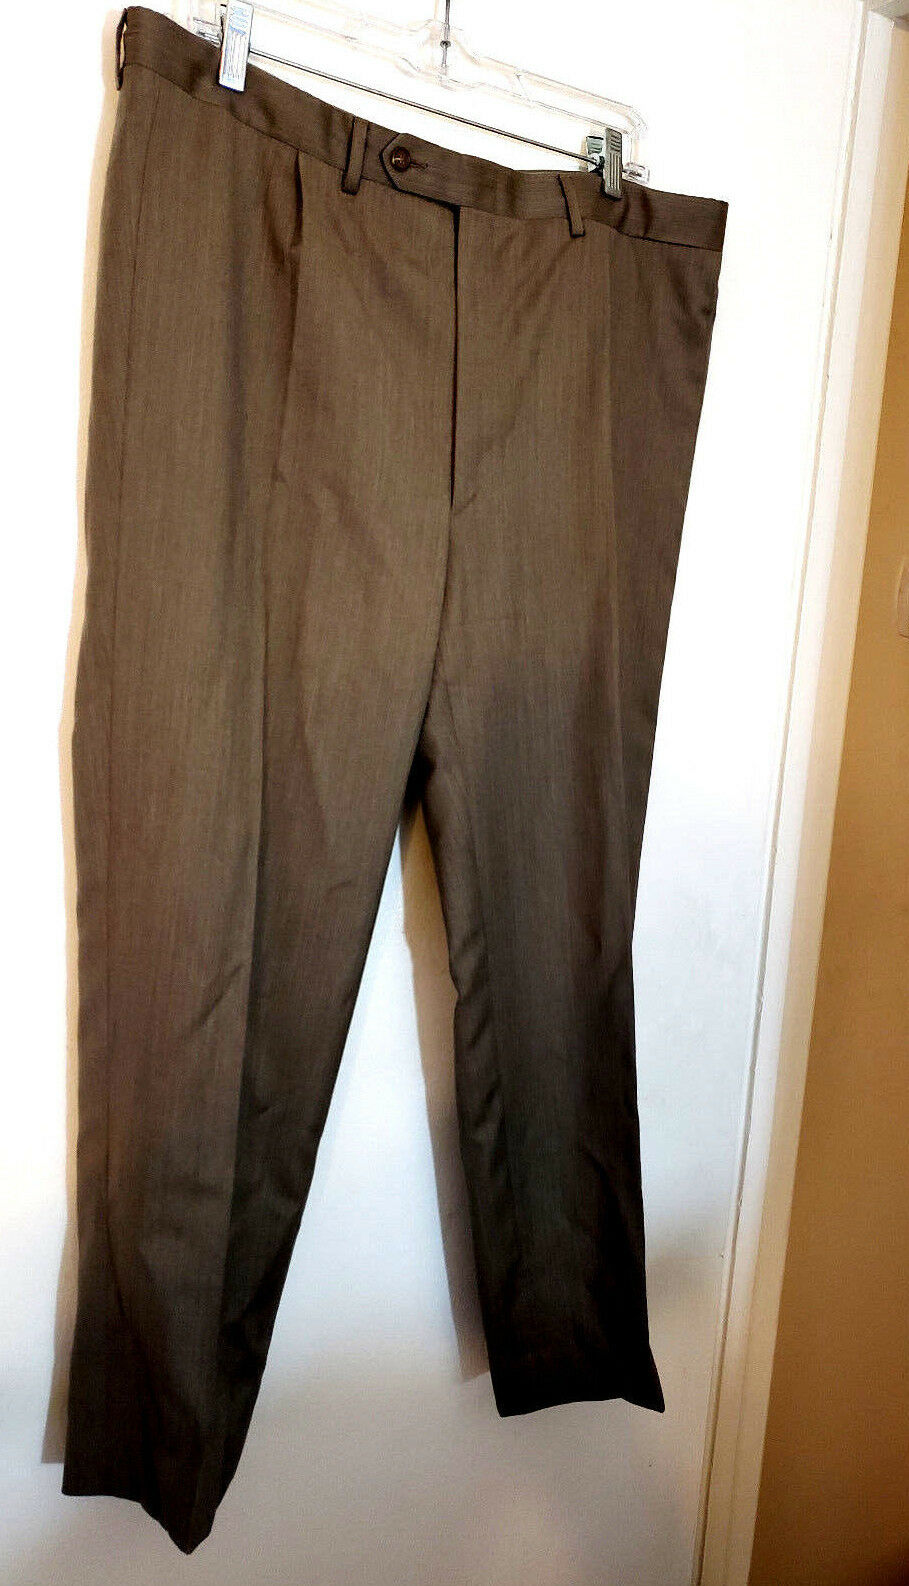 Canali Mens dress Pants 36x27.5. Light Brown flat front solid 100% Pure Wool